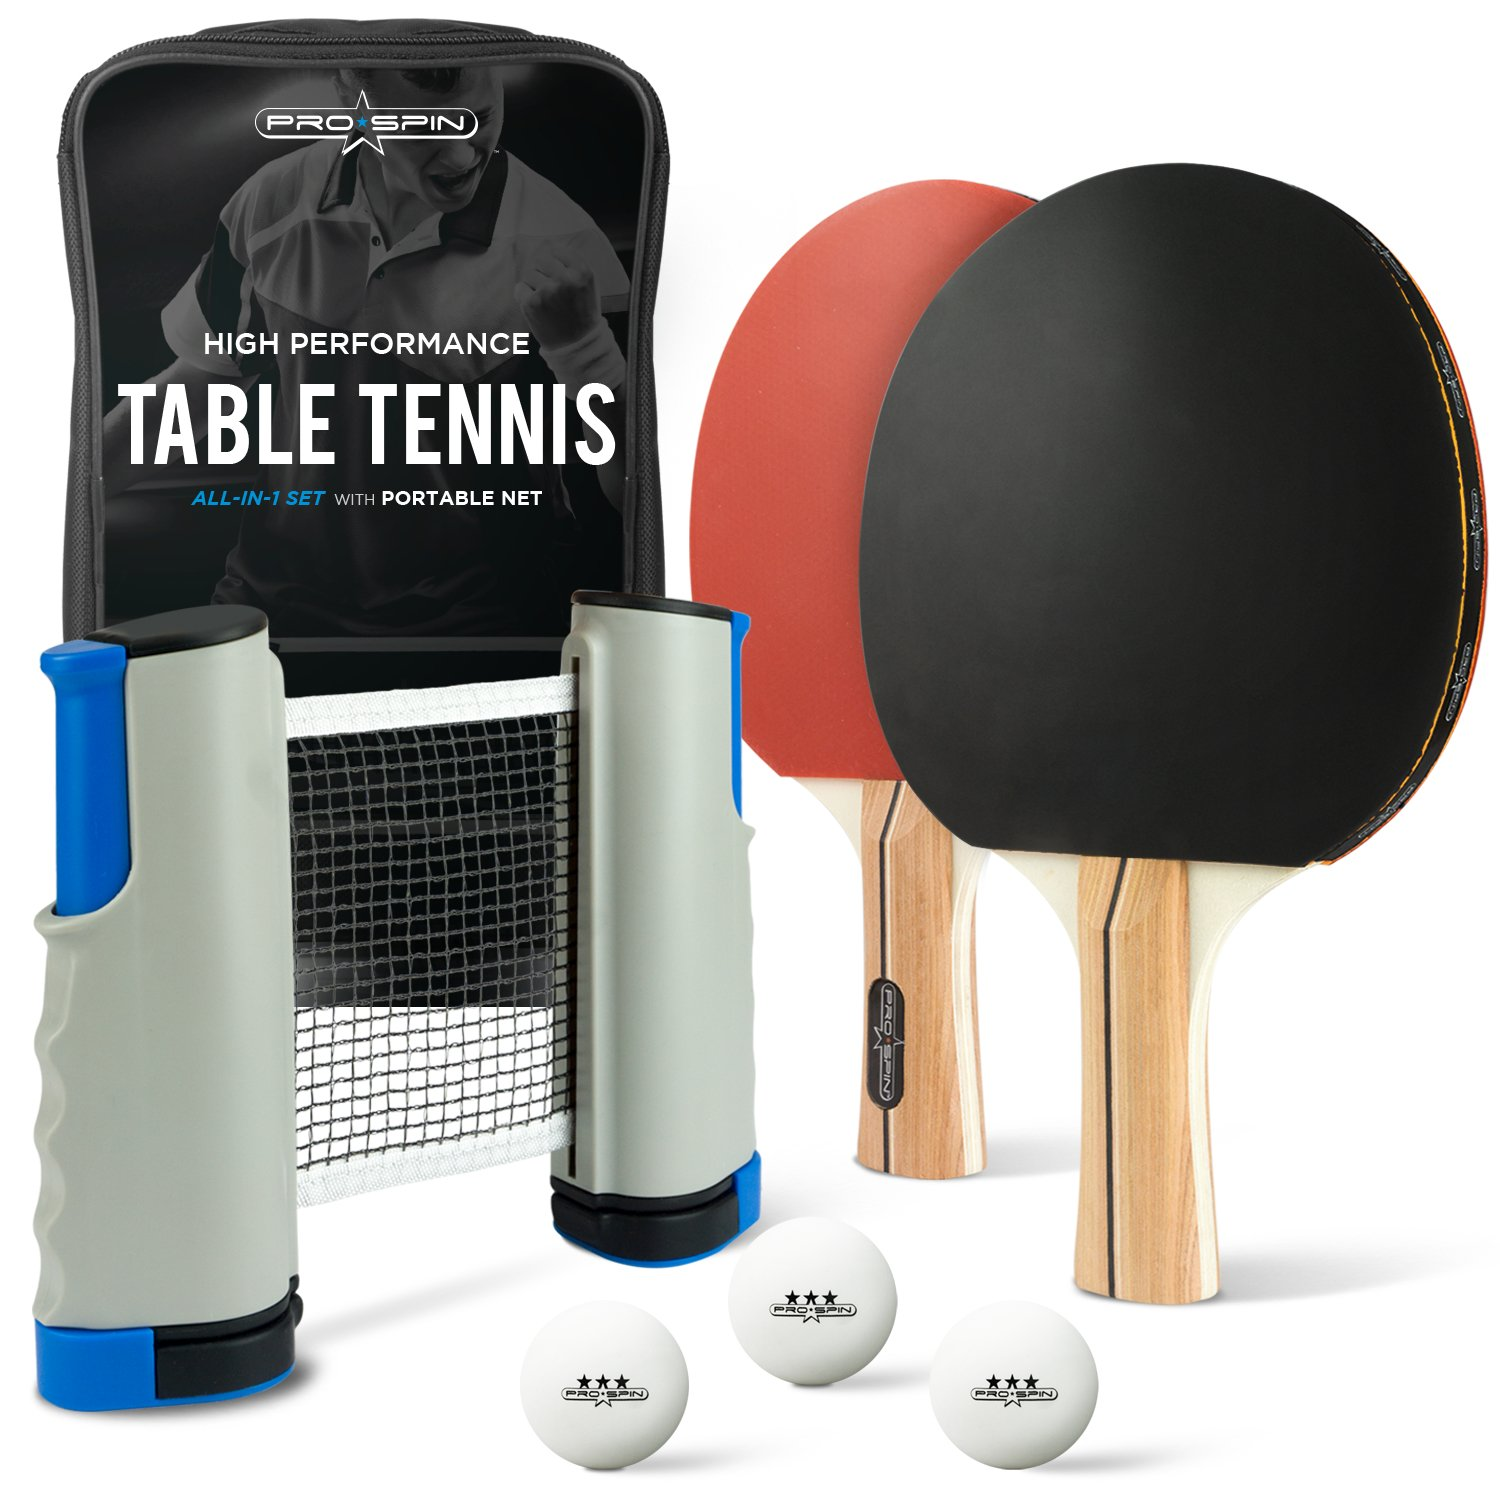 ProSpin Portable Ping Pong Paddle Set - Complete Kit Retractable Net, 2 Paddles/Rackets, 3 Balls Travel Case - Play Anywhere on Any Table!